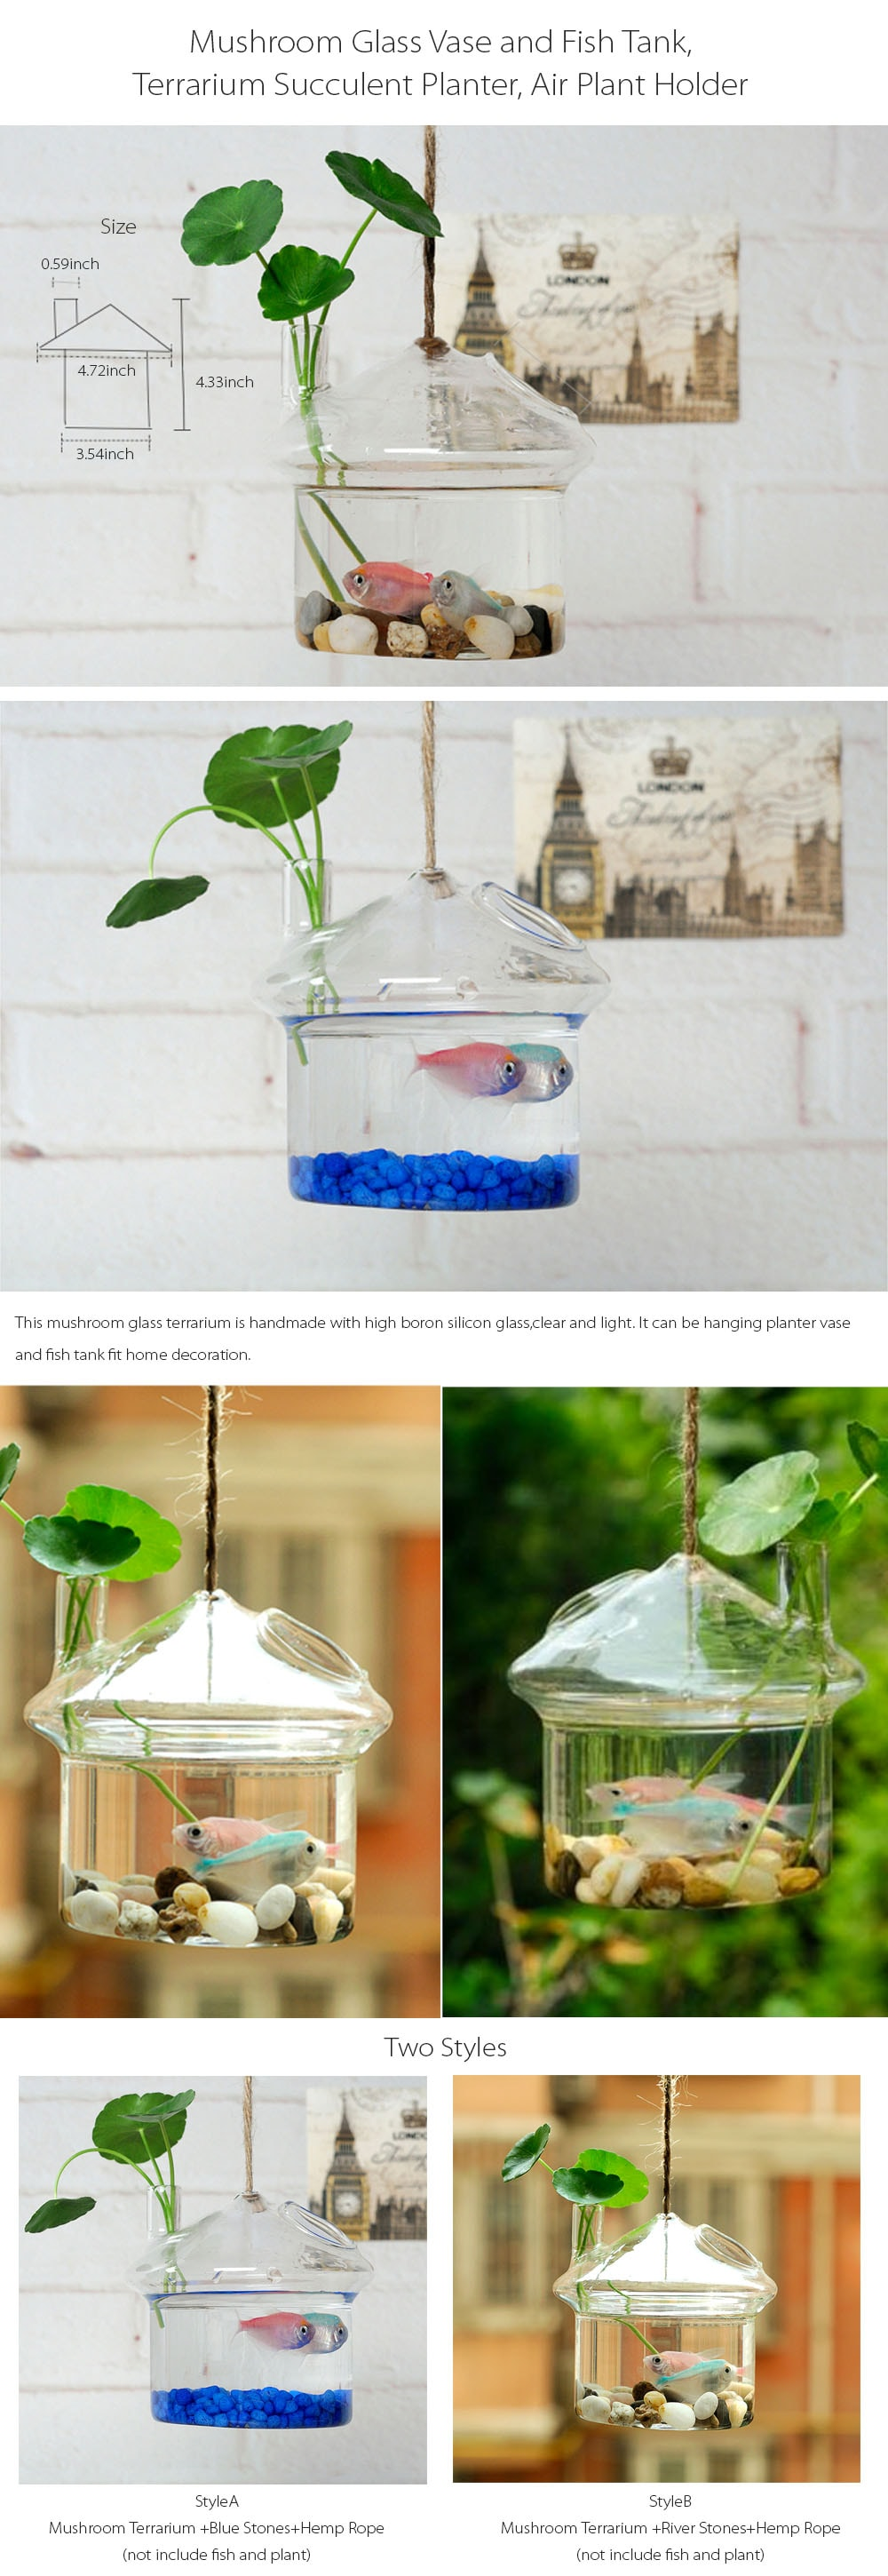 Hanging Fish Tank Your Fish Will Love It!